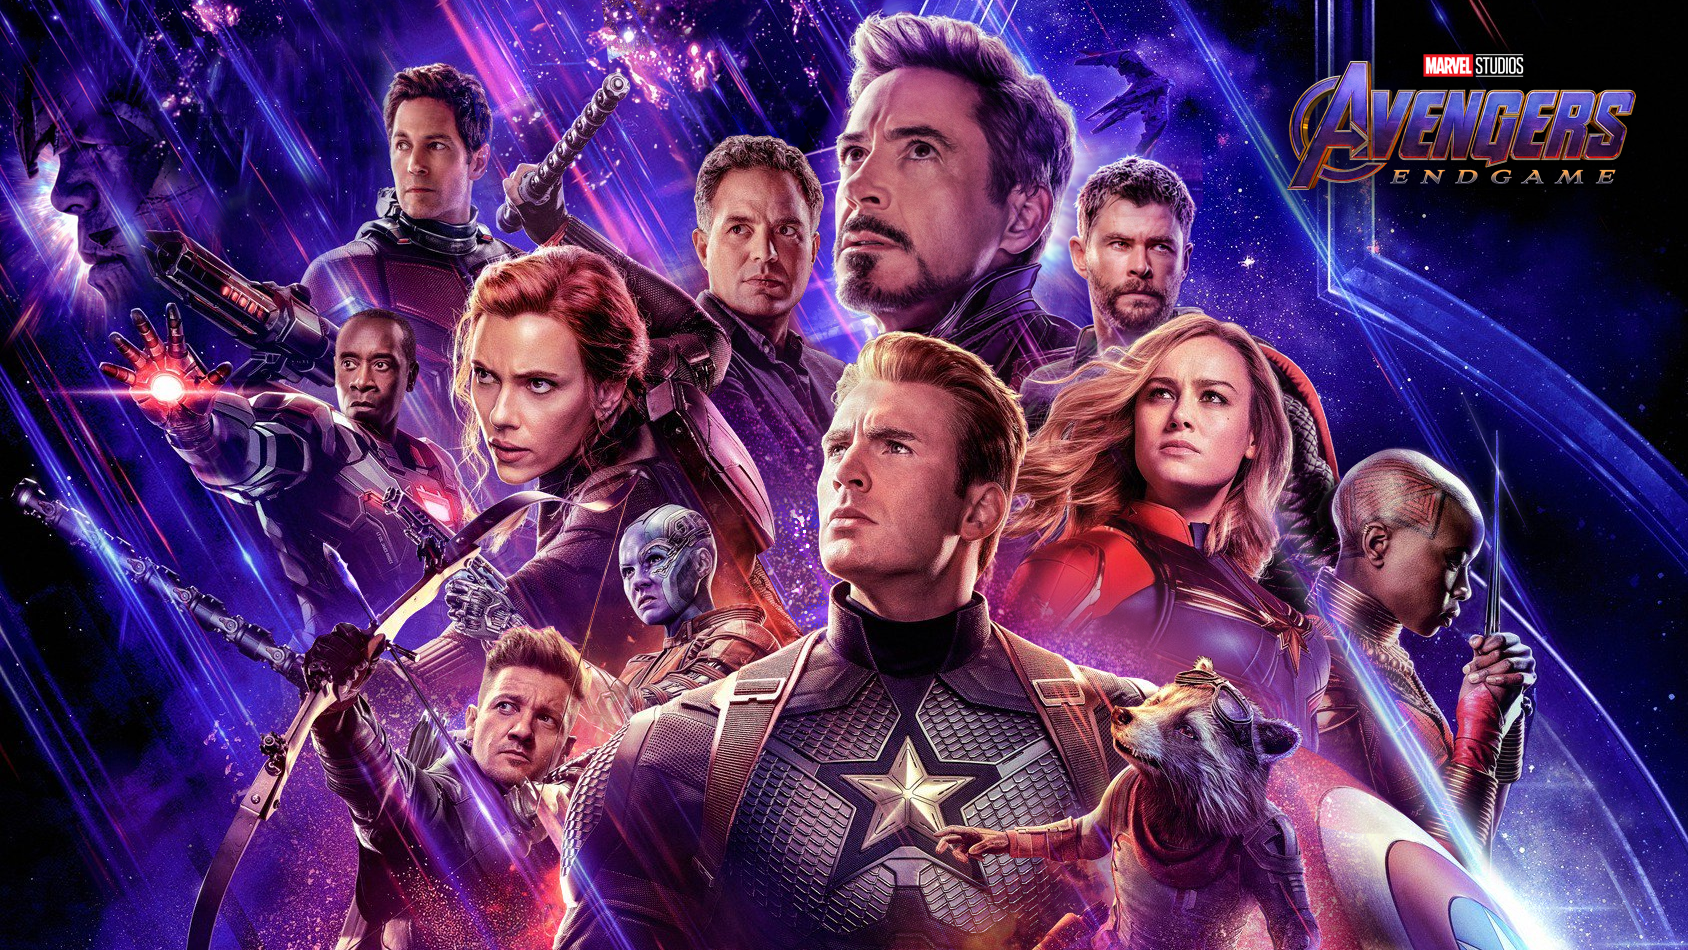 Free download Avengers Endgame Wallpaper169 tried my best ...